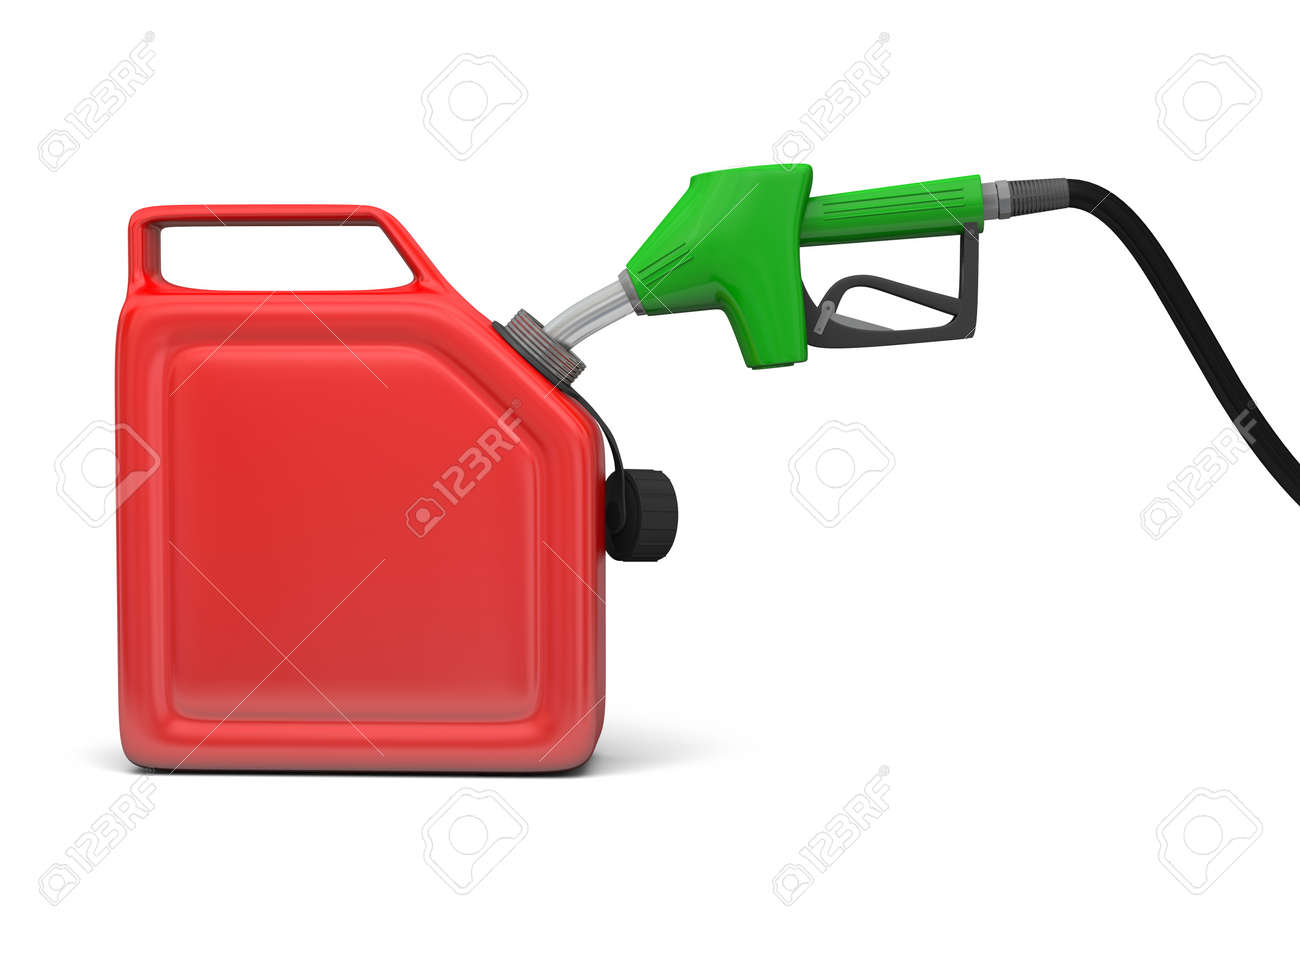 Illustration of green fuel pump nozzle and red jerry can isolated on white background Stock Photo - 15757933